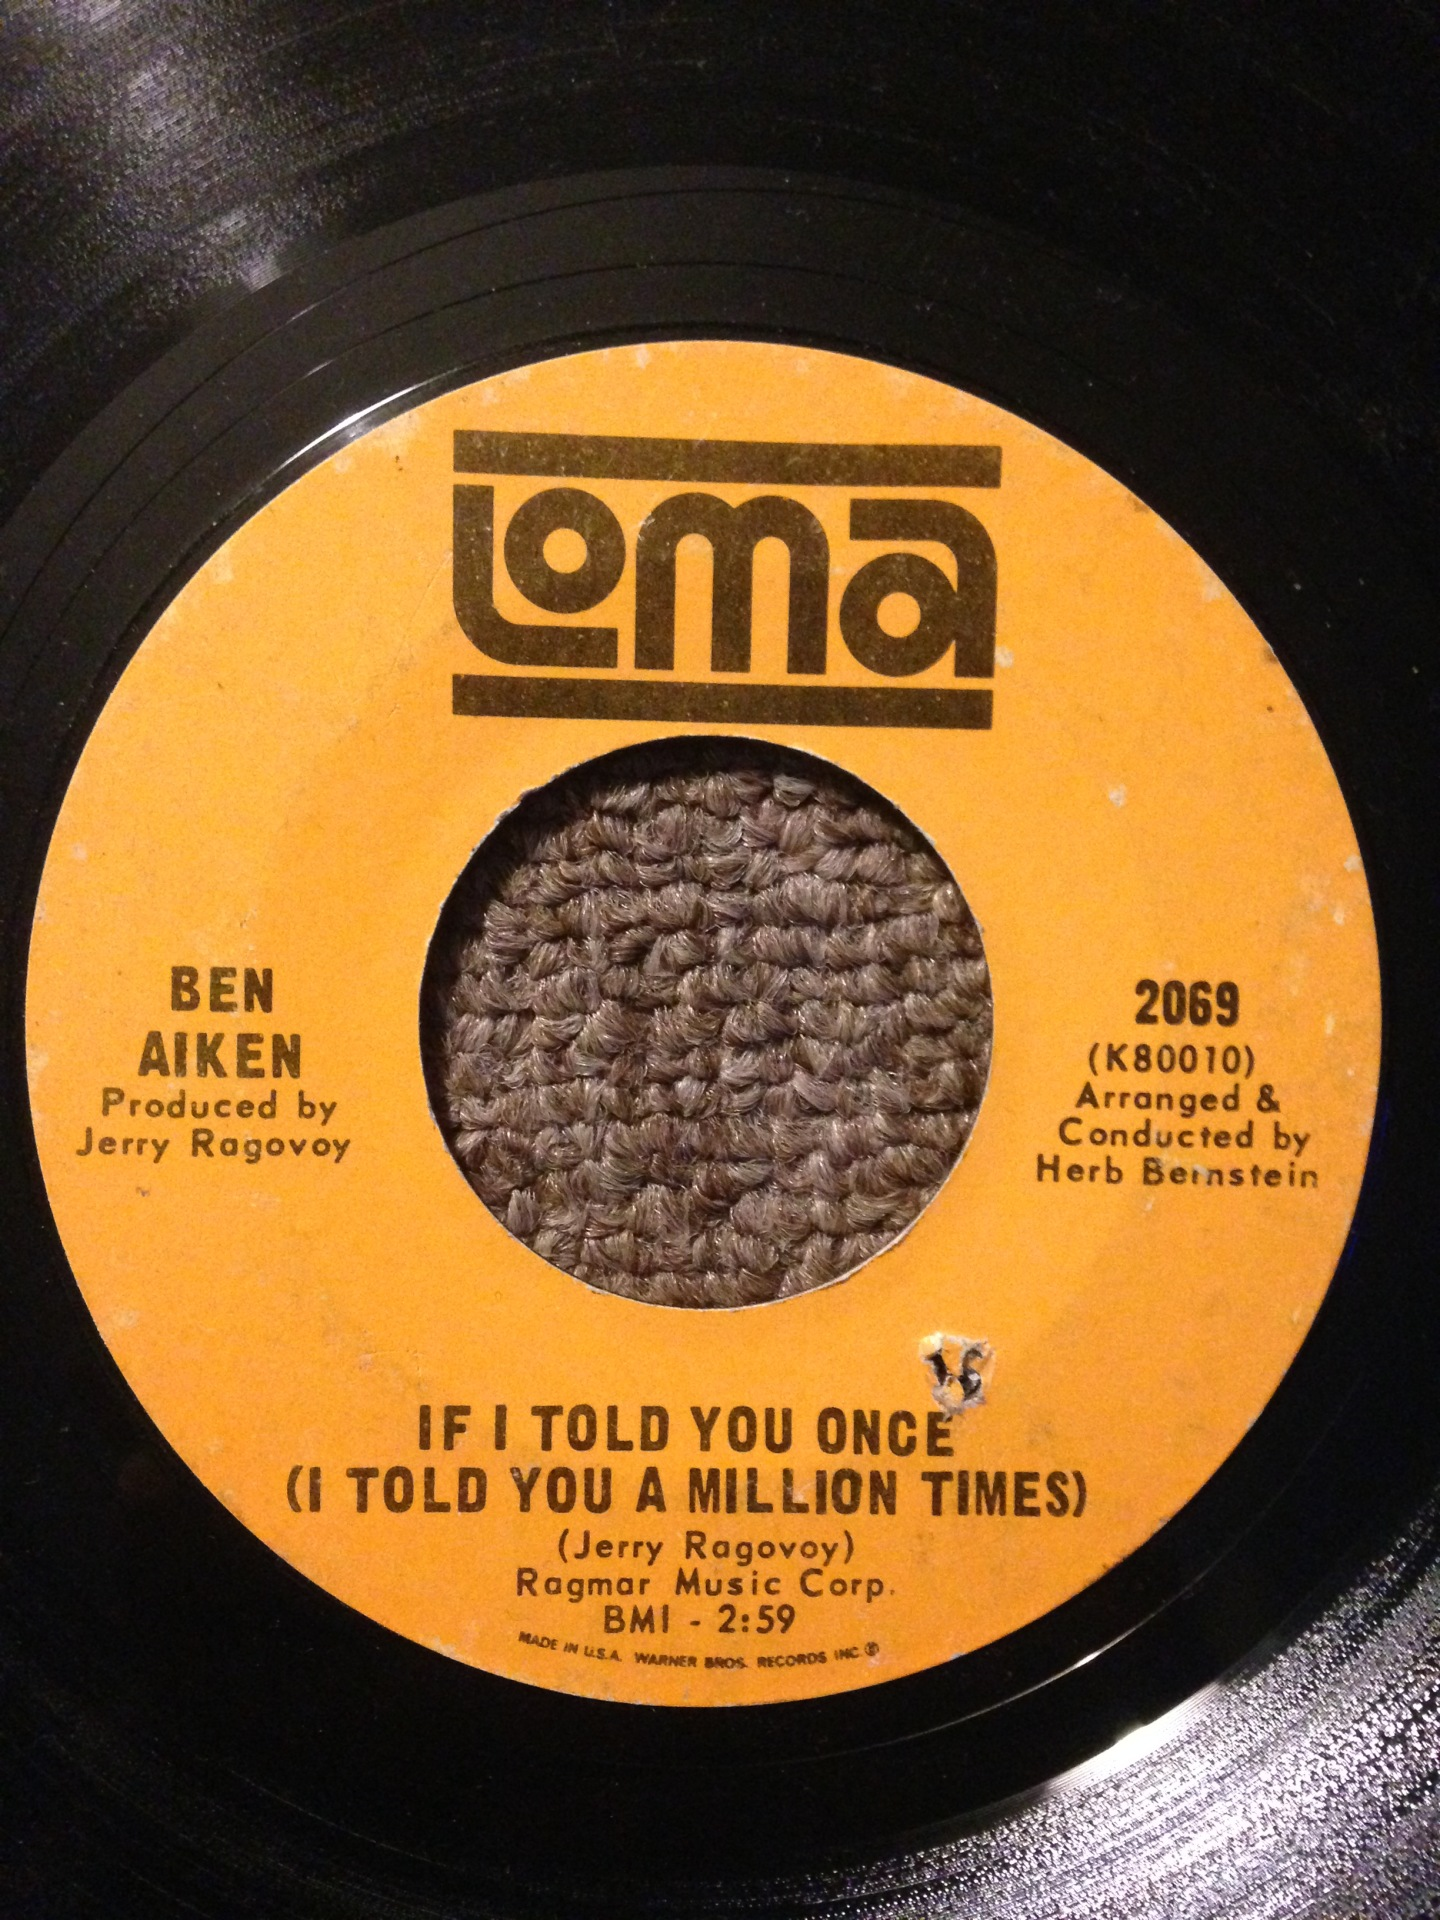 Ben Aiken - If I Told You Once (I Told You A Million Times)